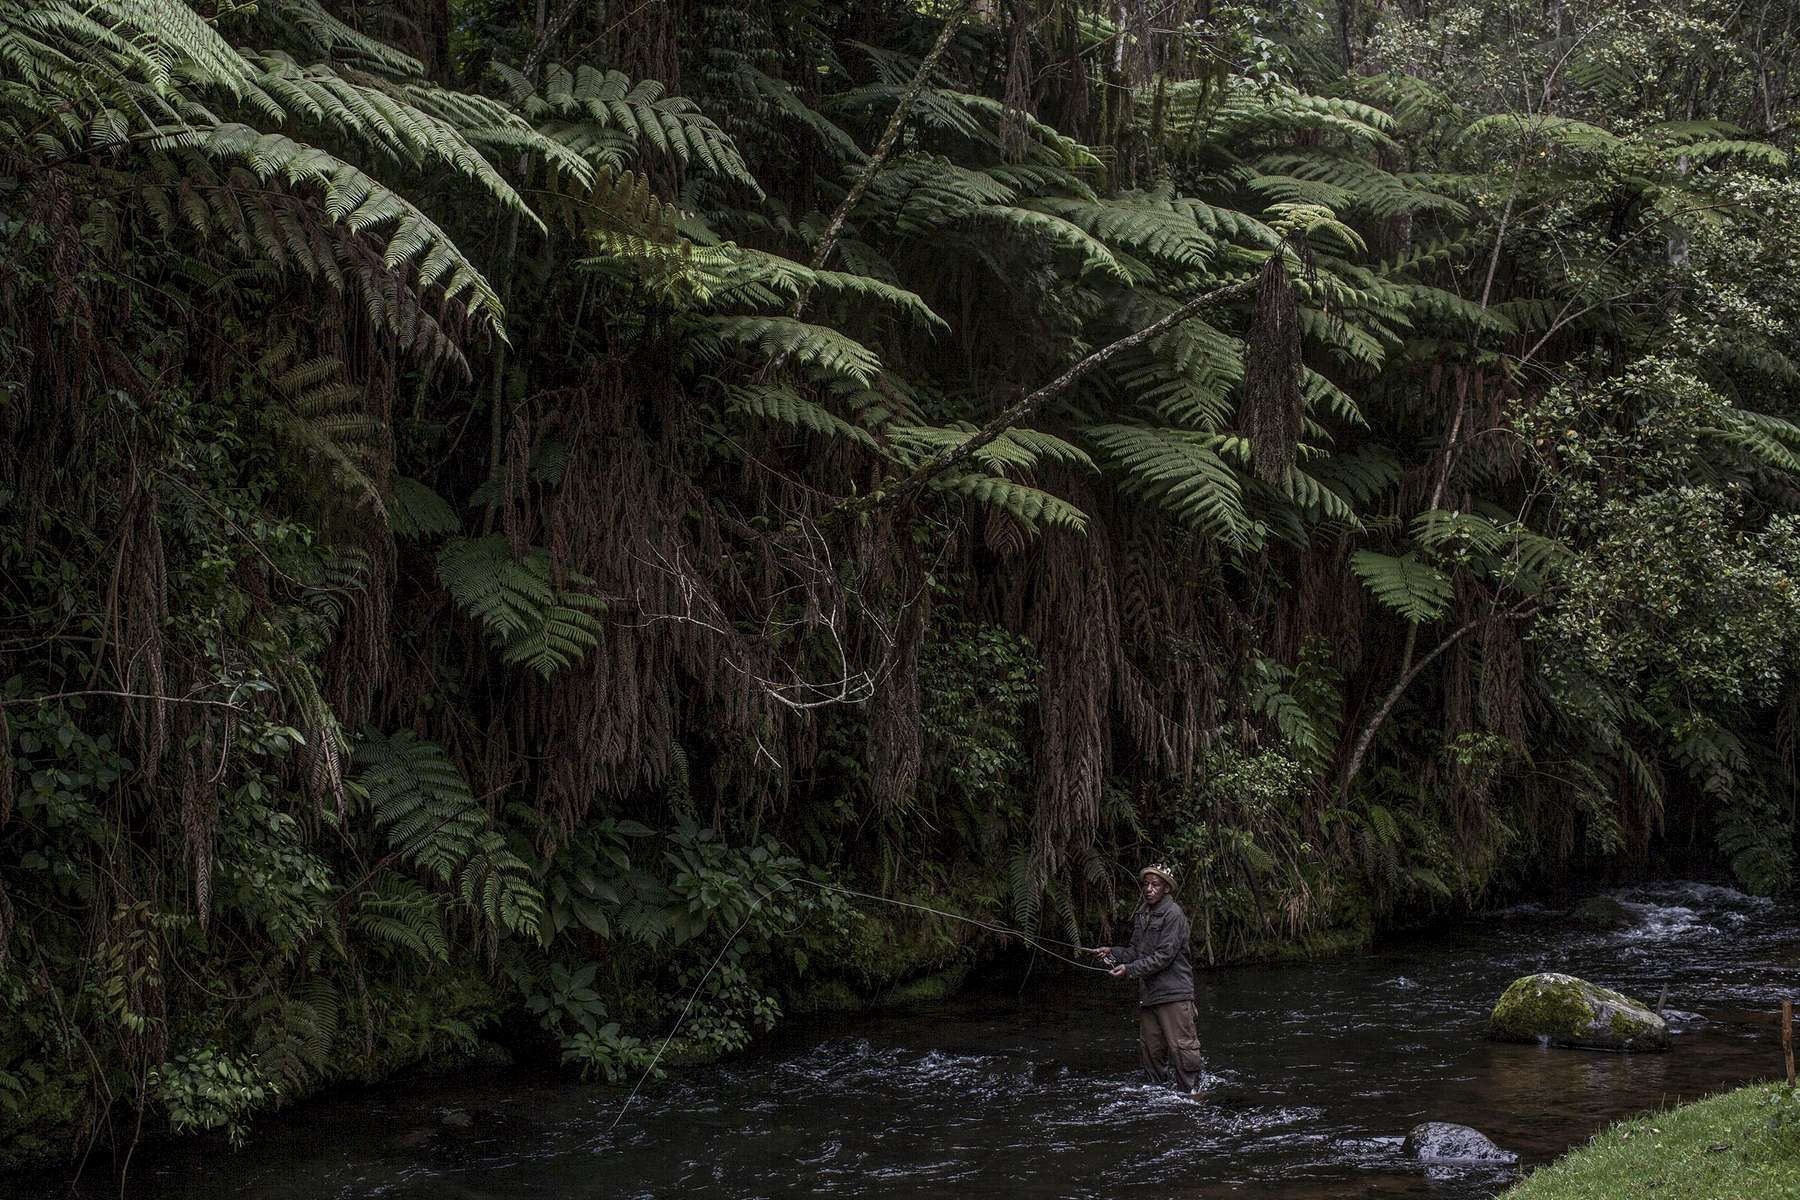 John Ngaii Moses casts his line in a trout-rich beat of the northern Mathioya River. The terrain around the river varies, from clear-agricultural fields to dense rainforests.